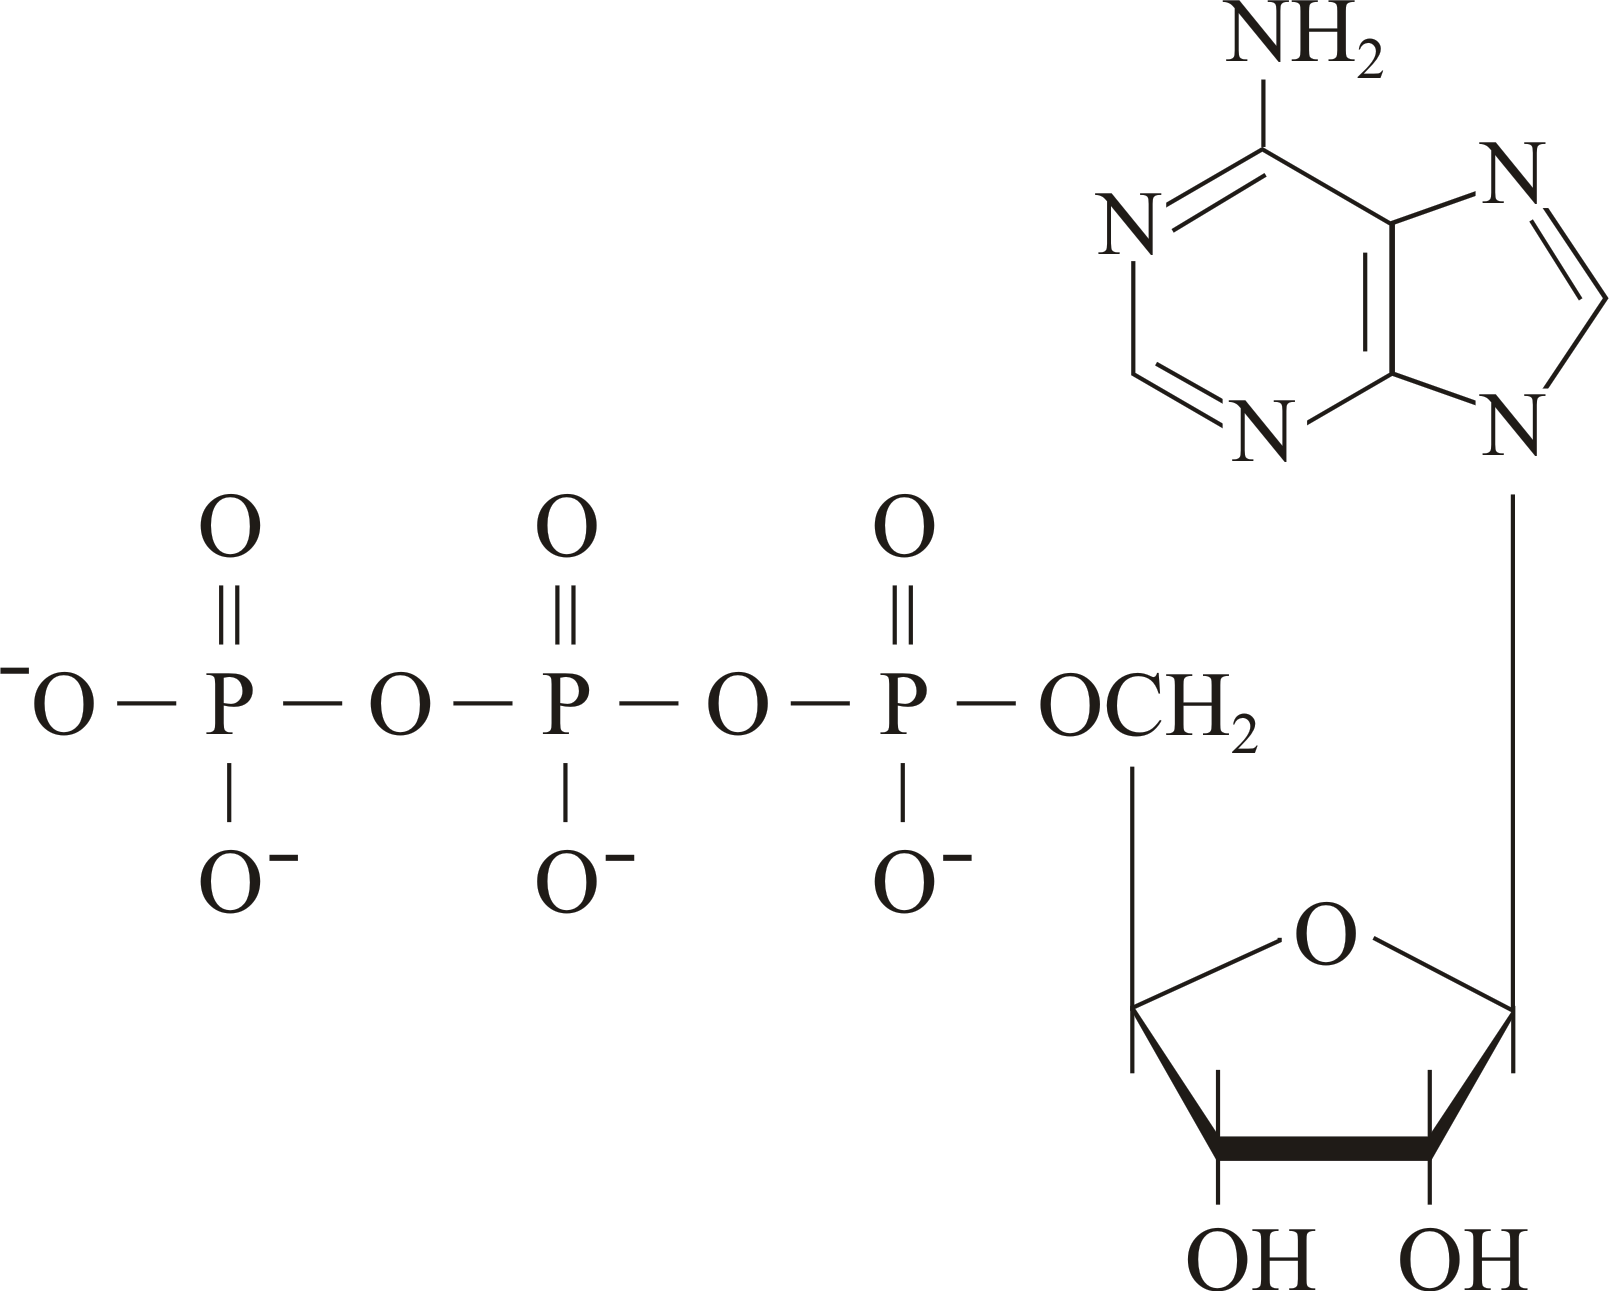 an introduction to the phosphate compound adenosine triphosphate